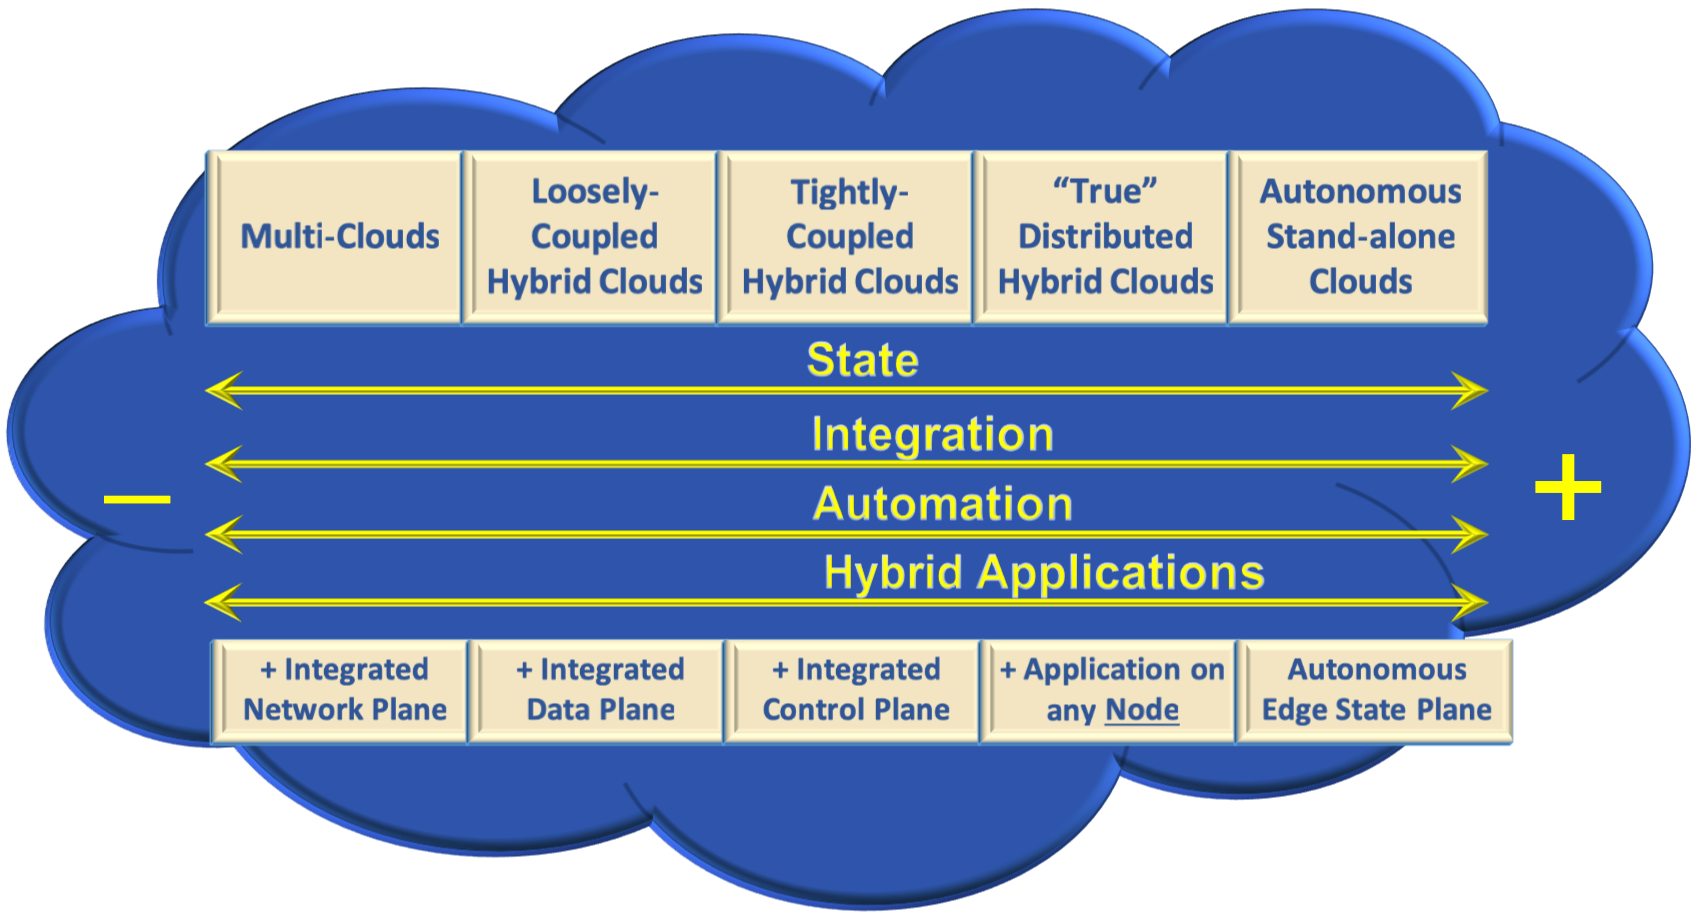 Hybrid Cloud Taxonomy